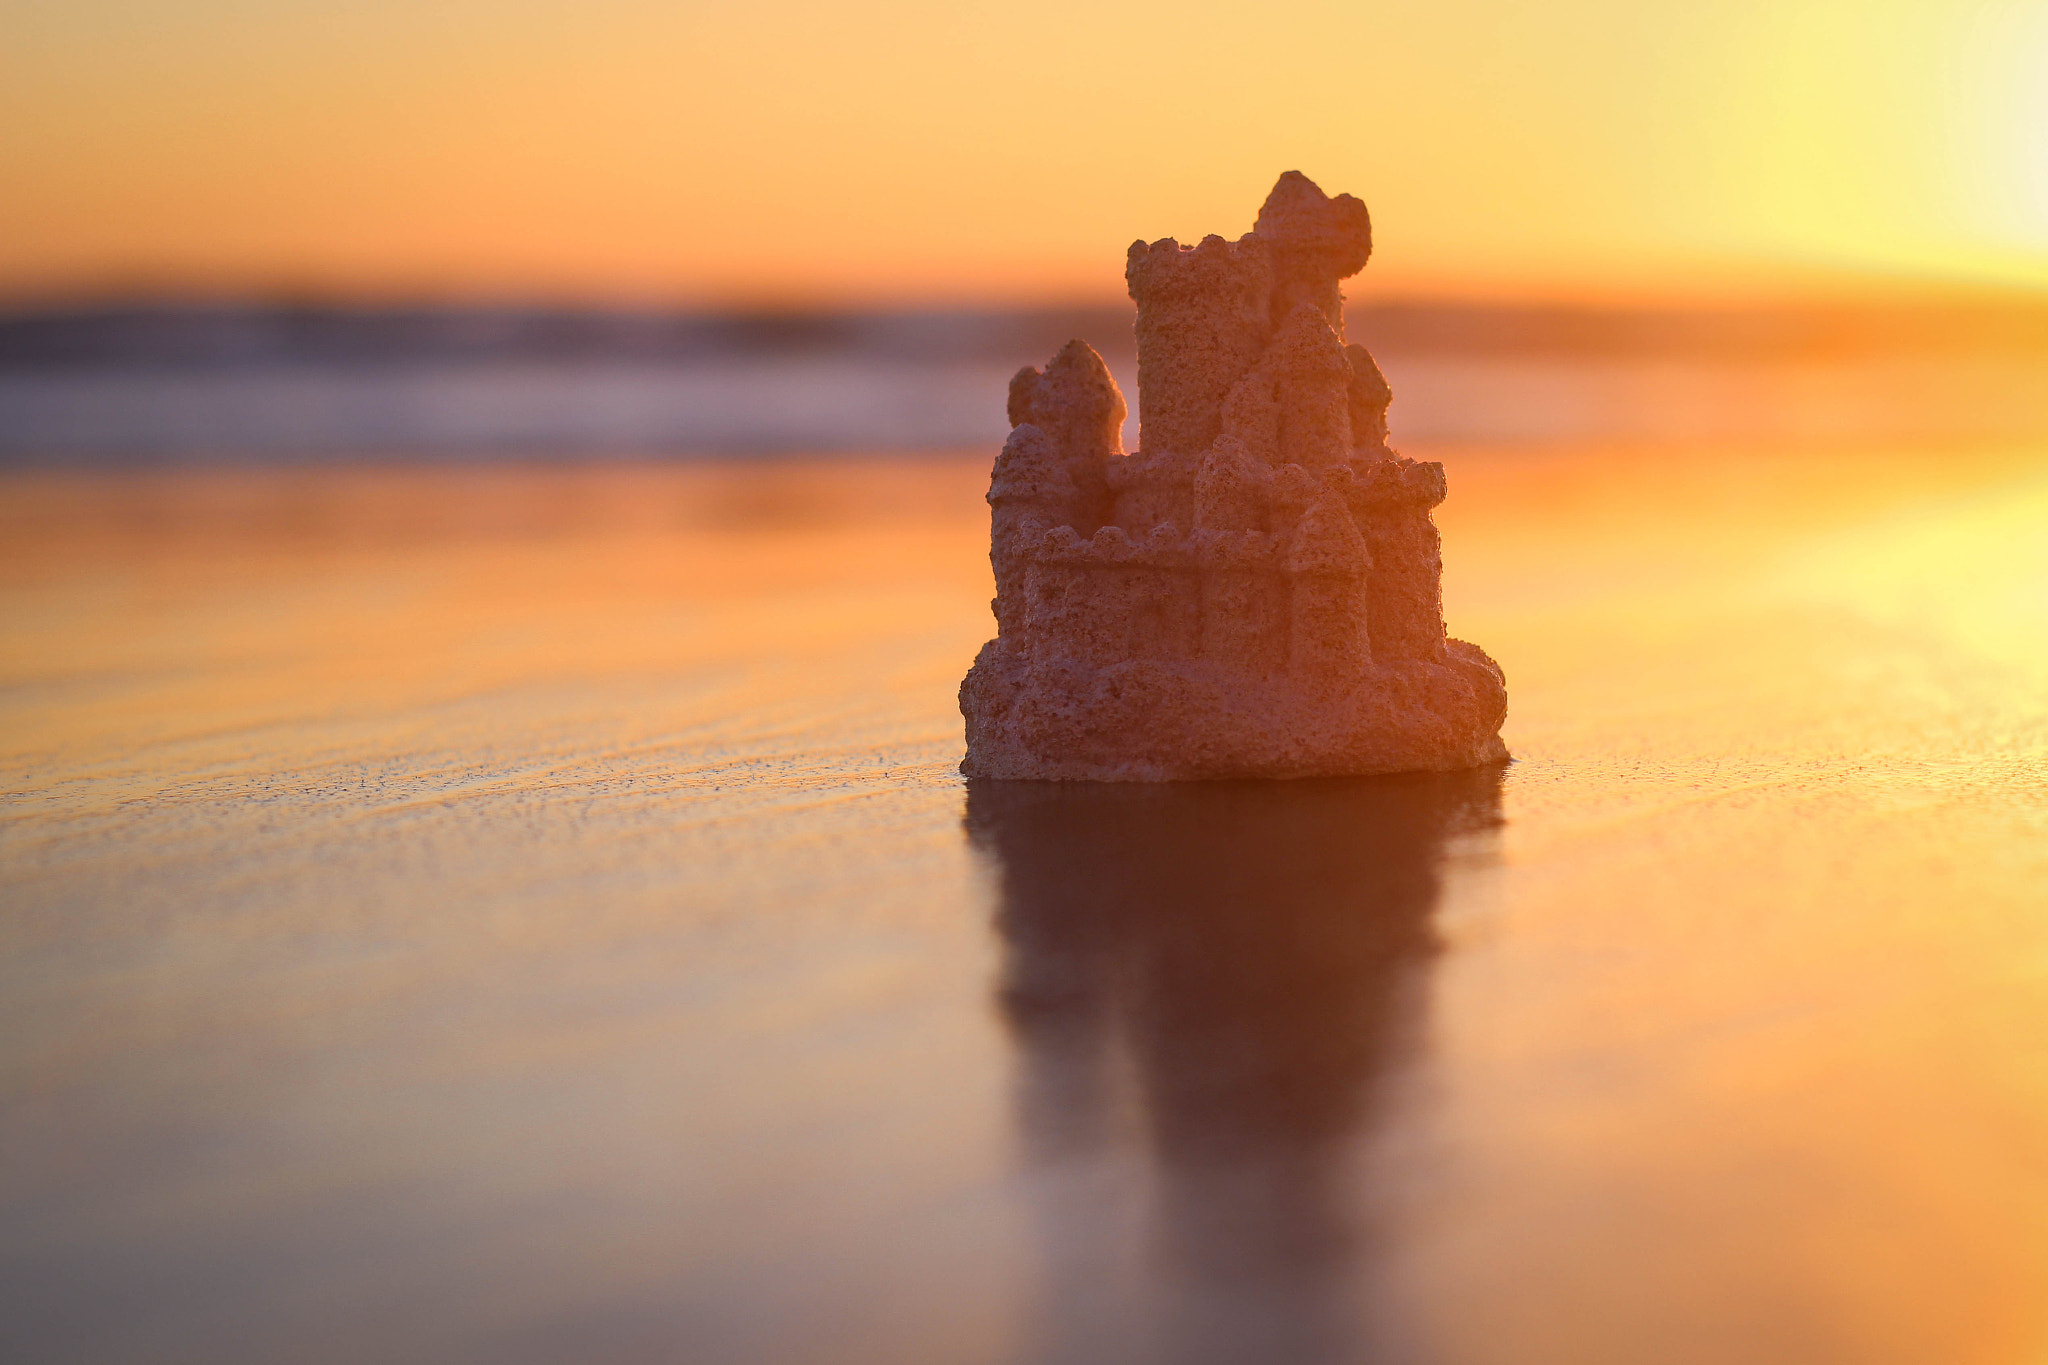 Photograph Castle by the Sea by Courtney D on 500px